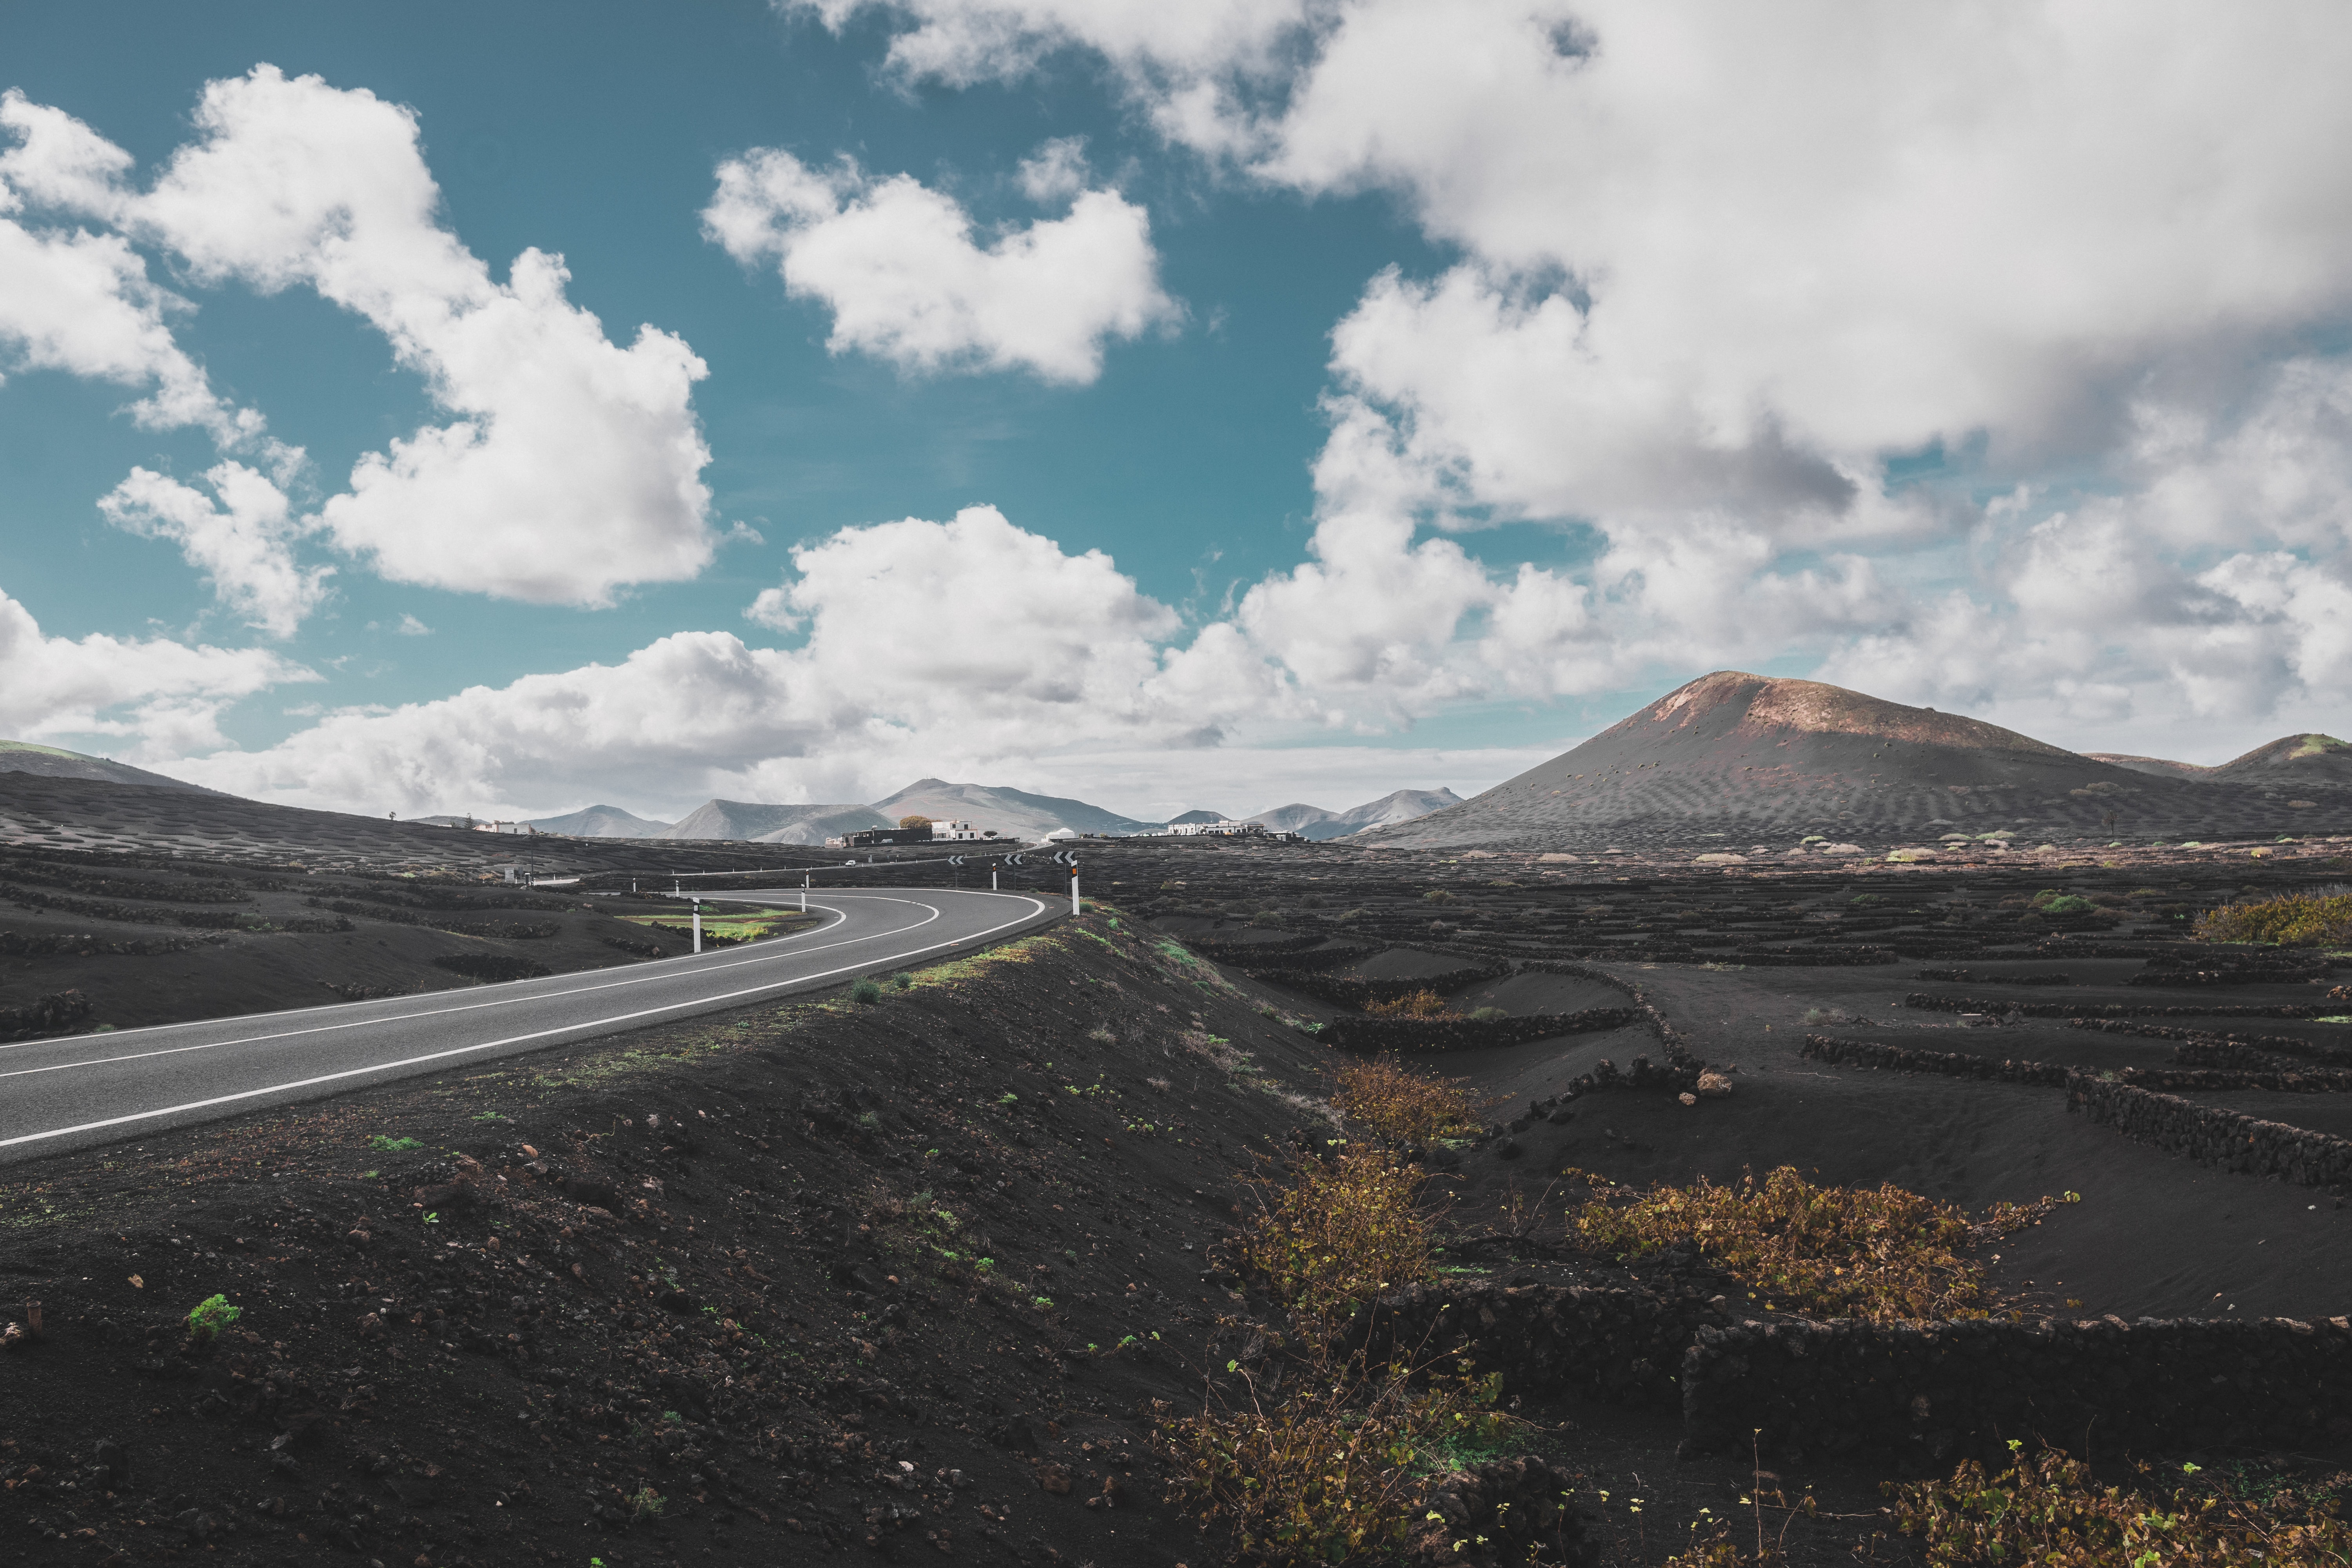 road far from mountain under white clouds